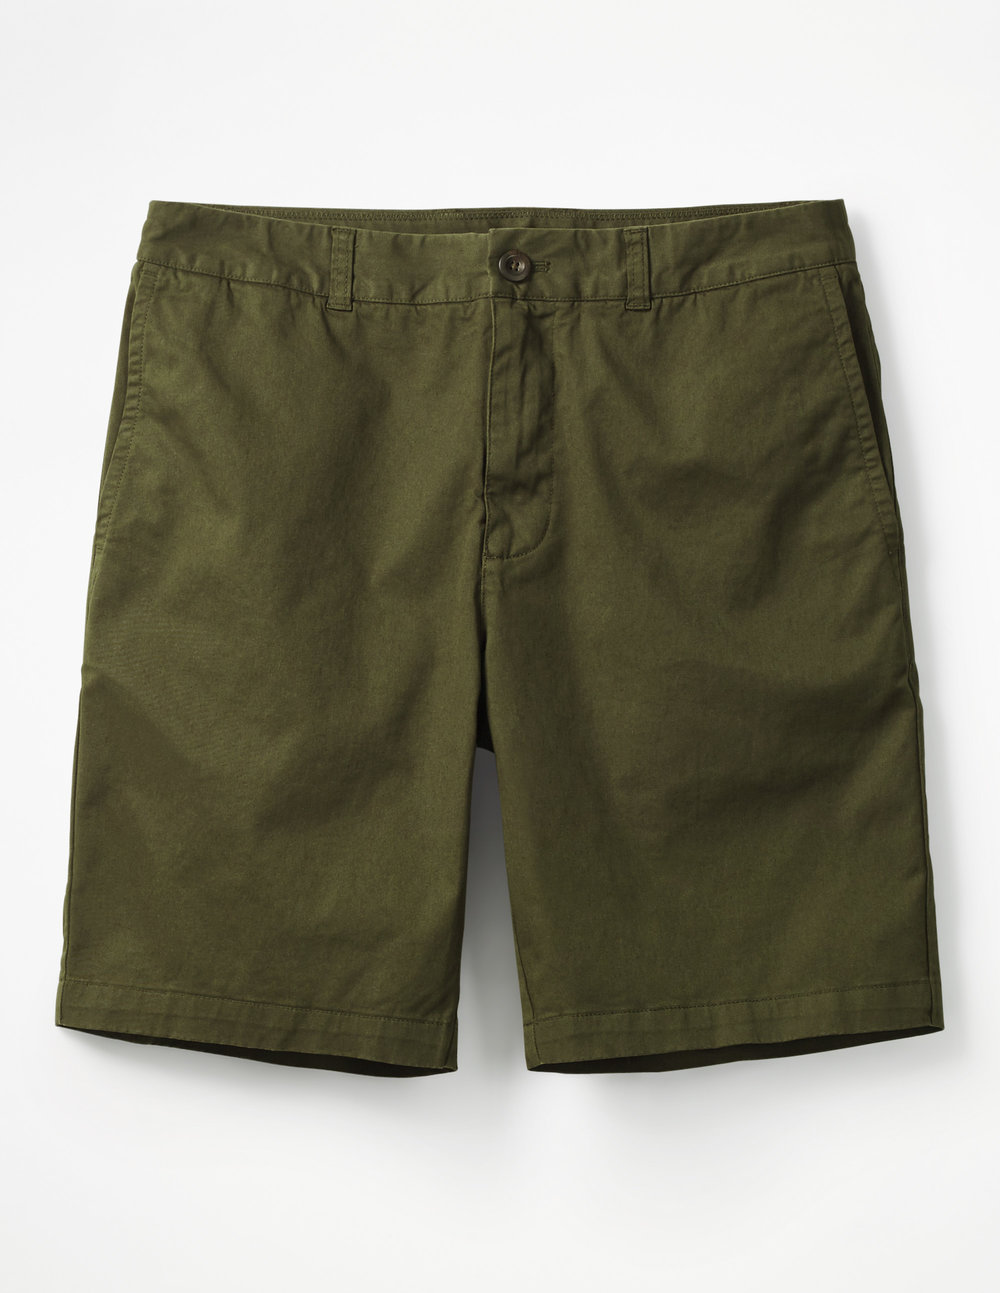 Boden Chino Shorts* - Available in 7